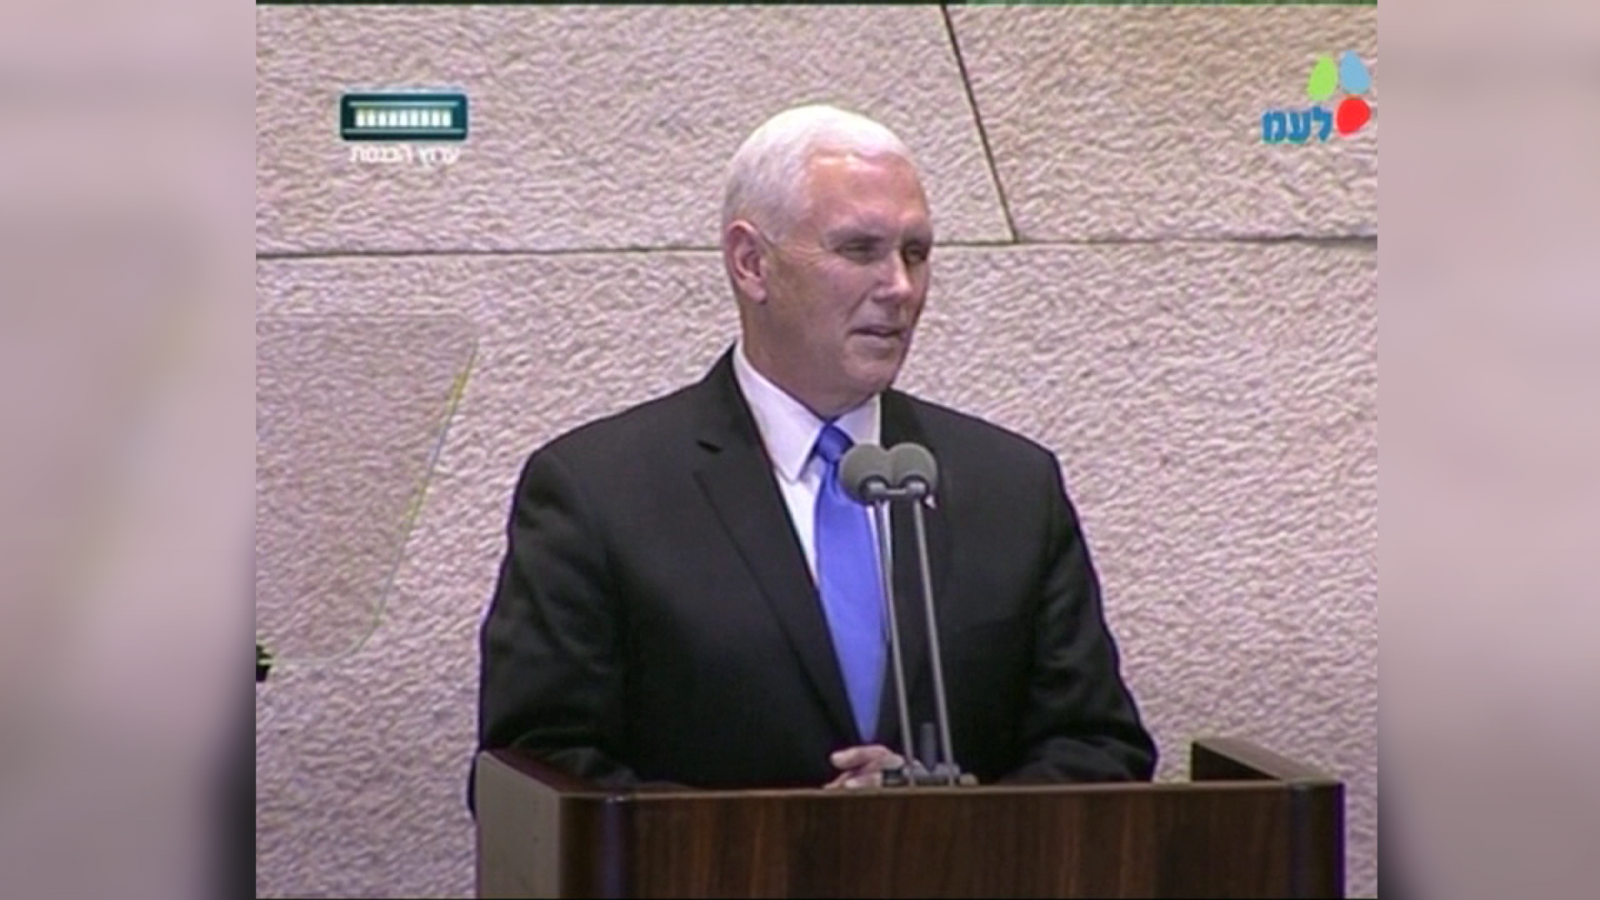 vice-president-pence-announces-plan-to-move-u-s-embassy-to-israel-before-2019